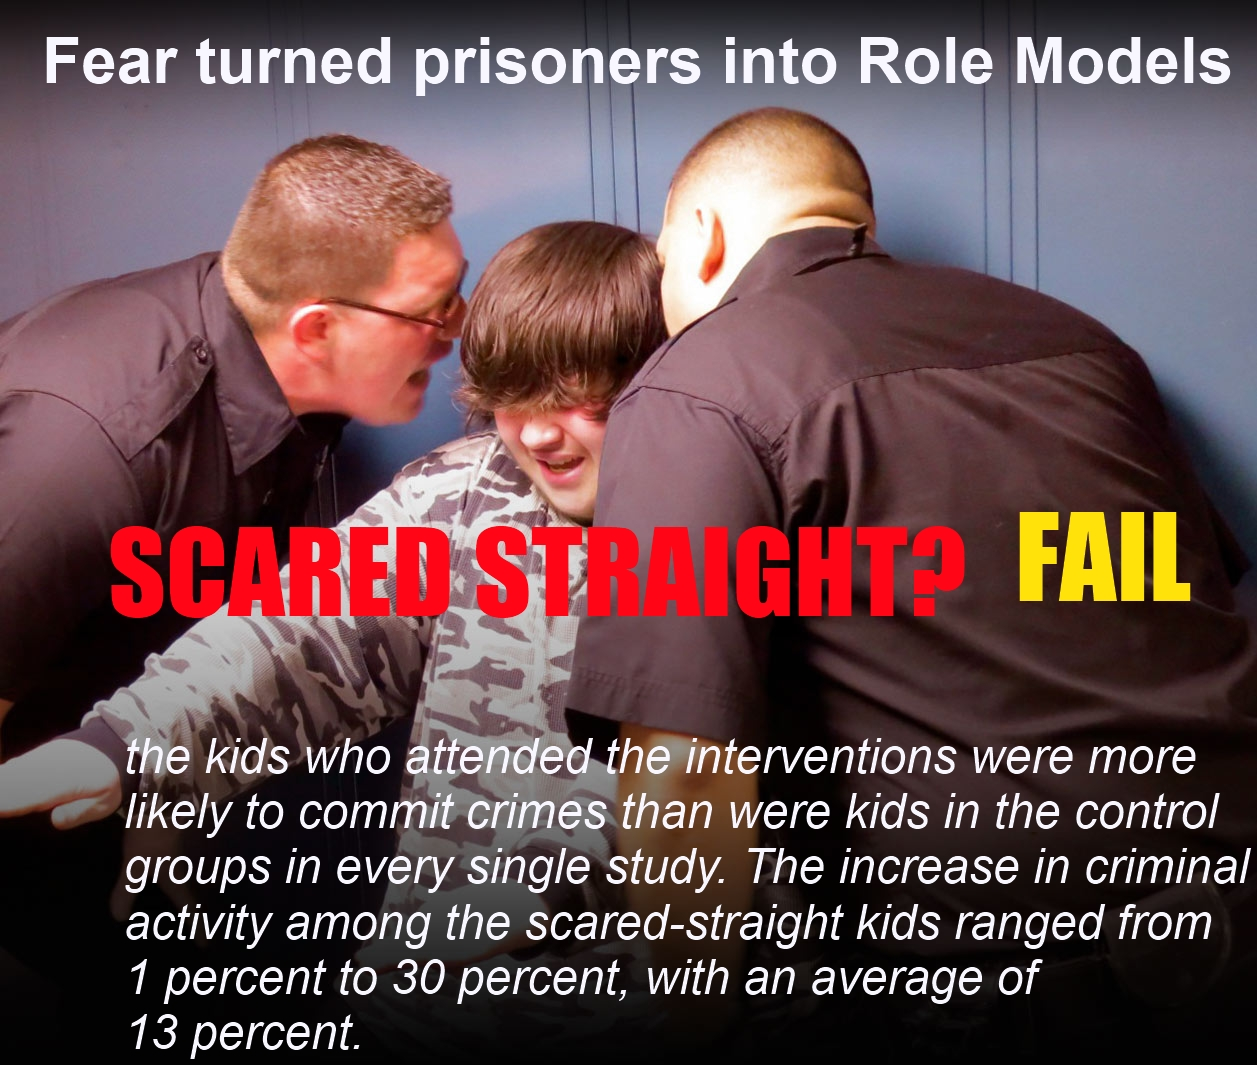 Fear Turned prisons into role models.